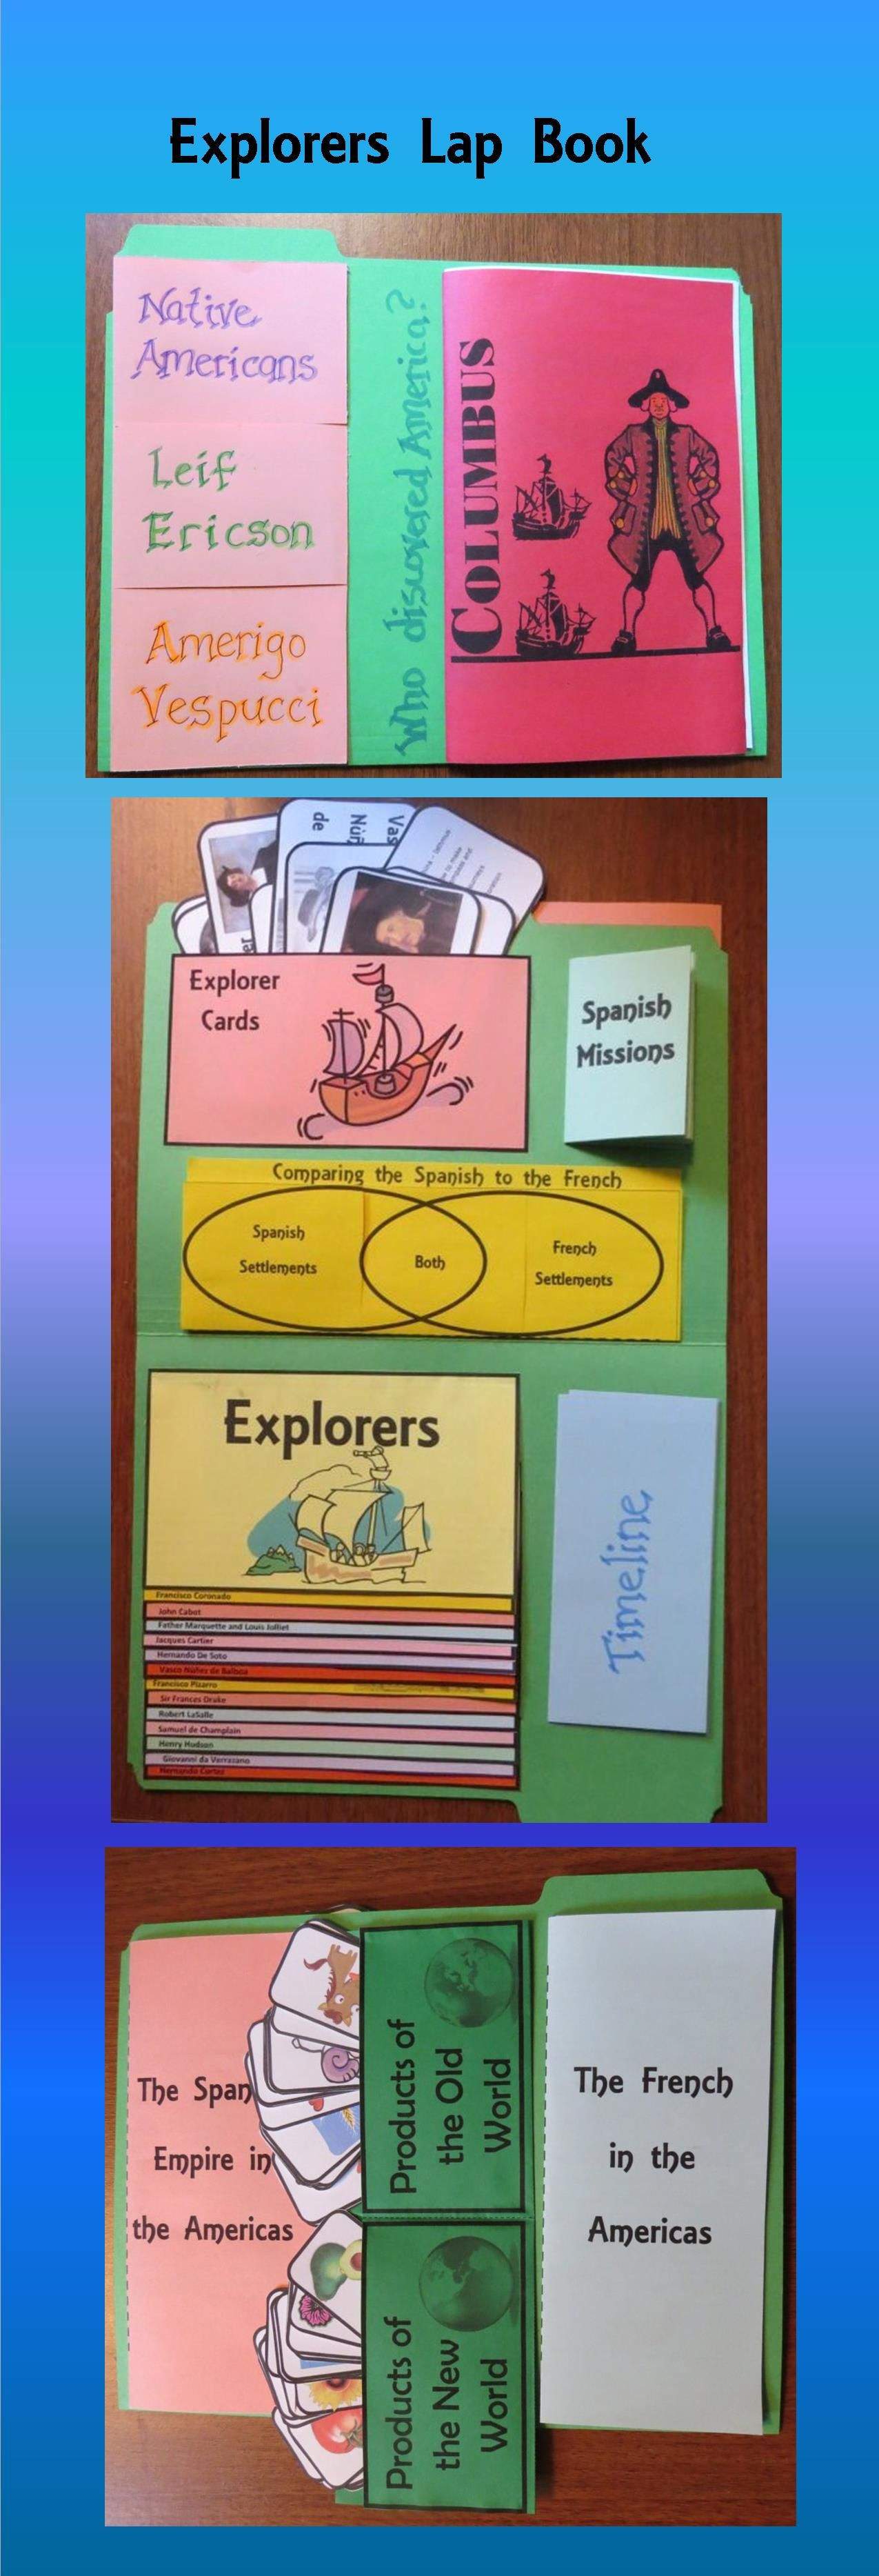 This Explorers Lap Book Contains Interactive Organizers